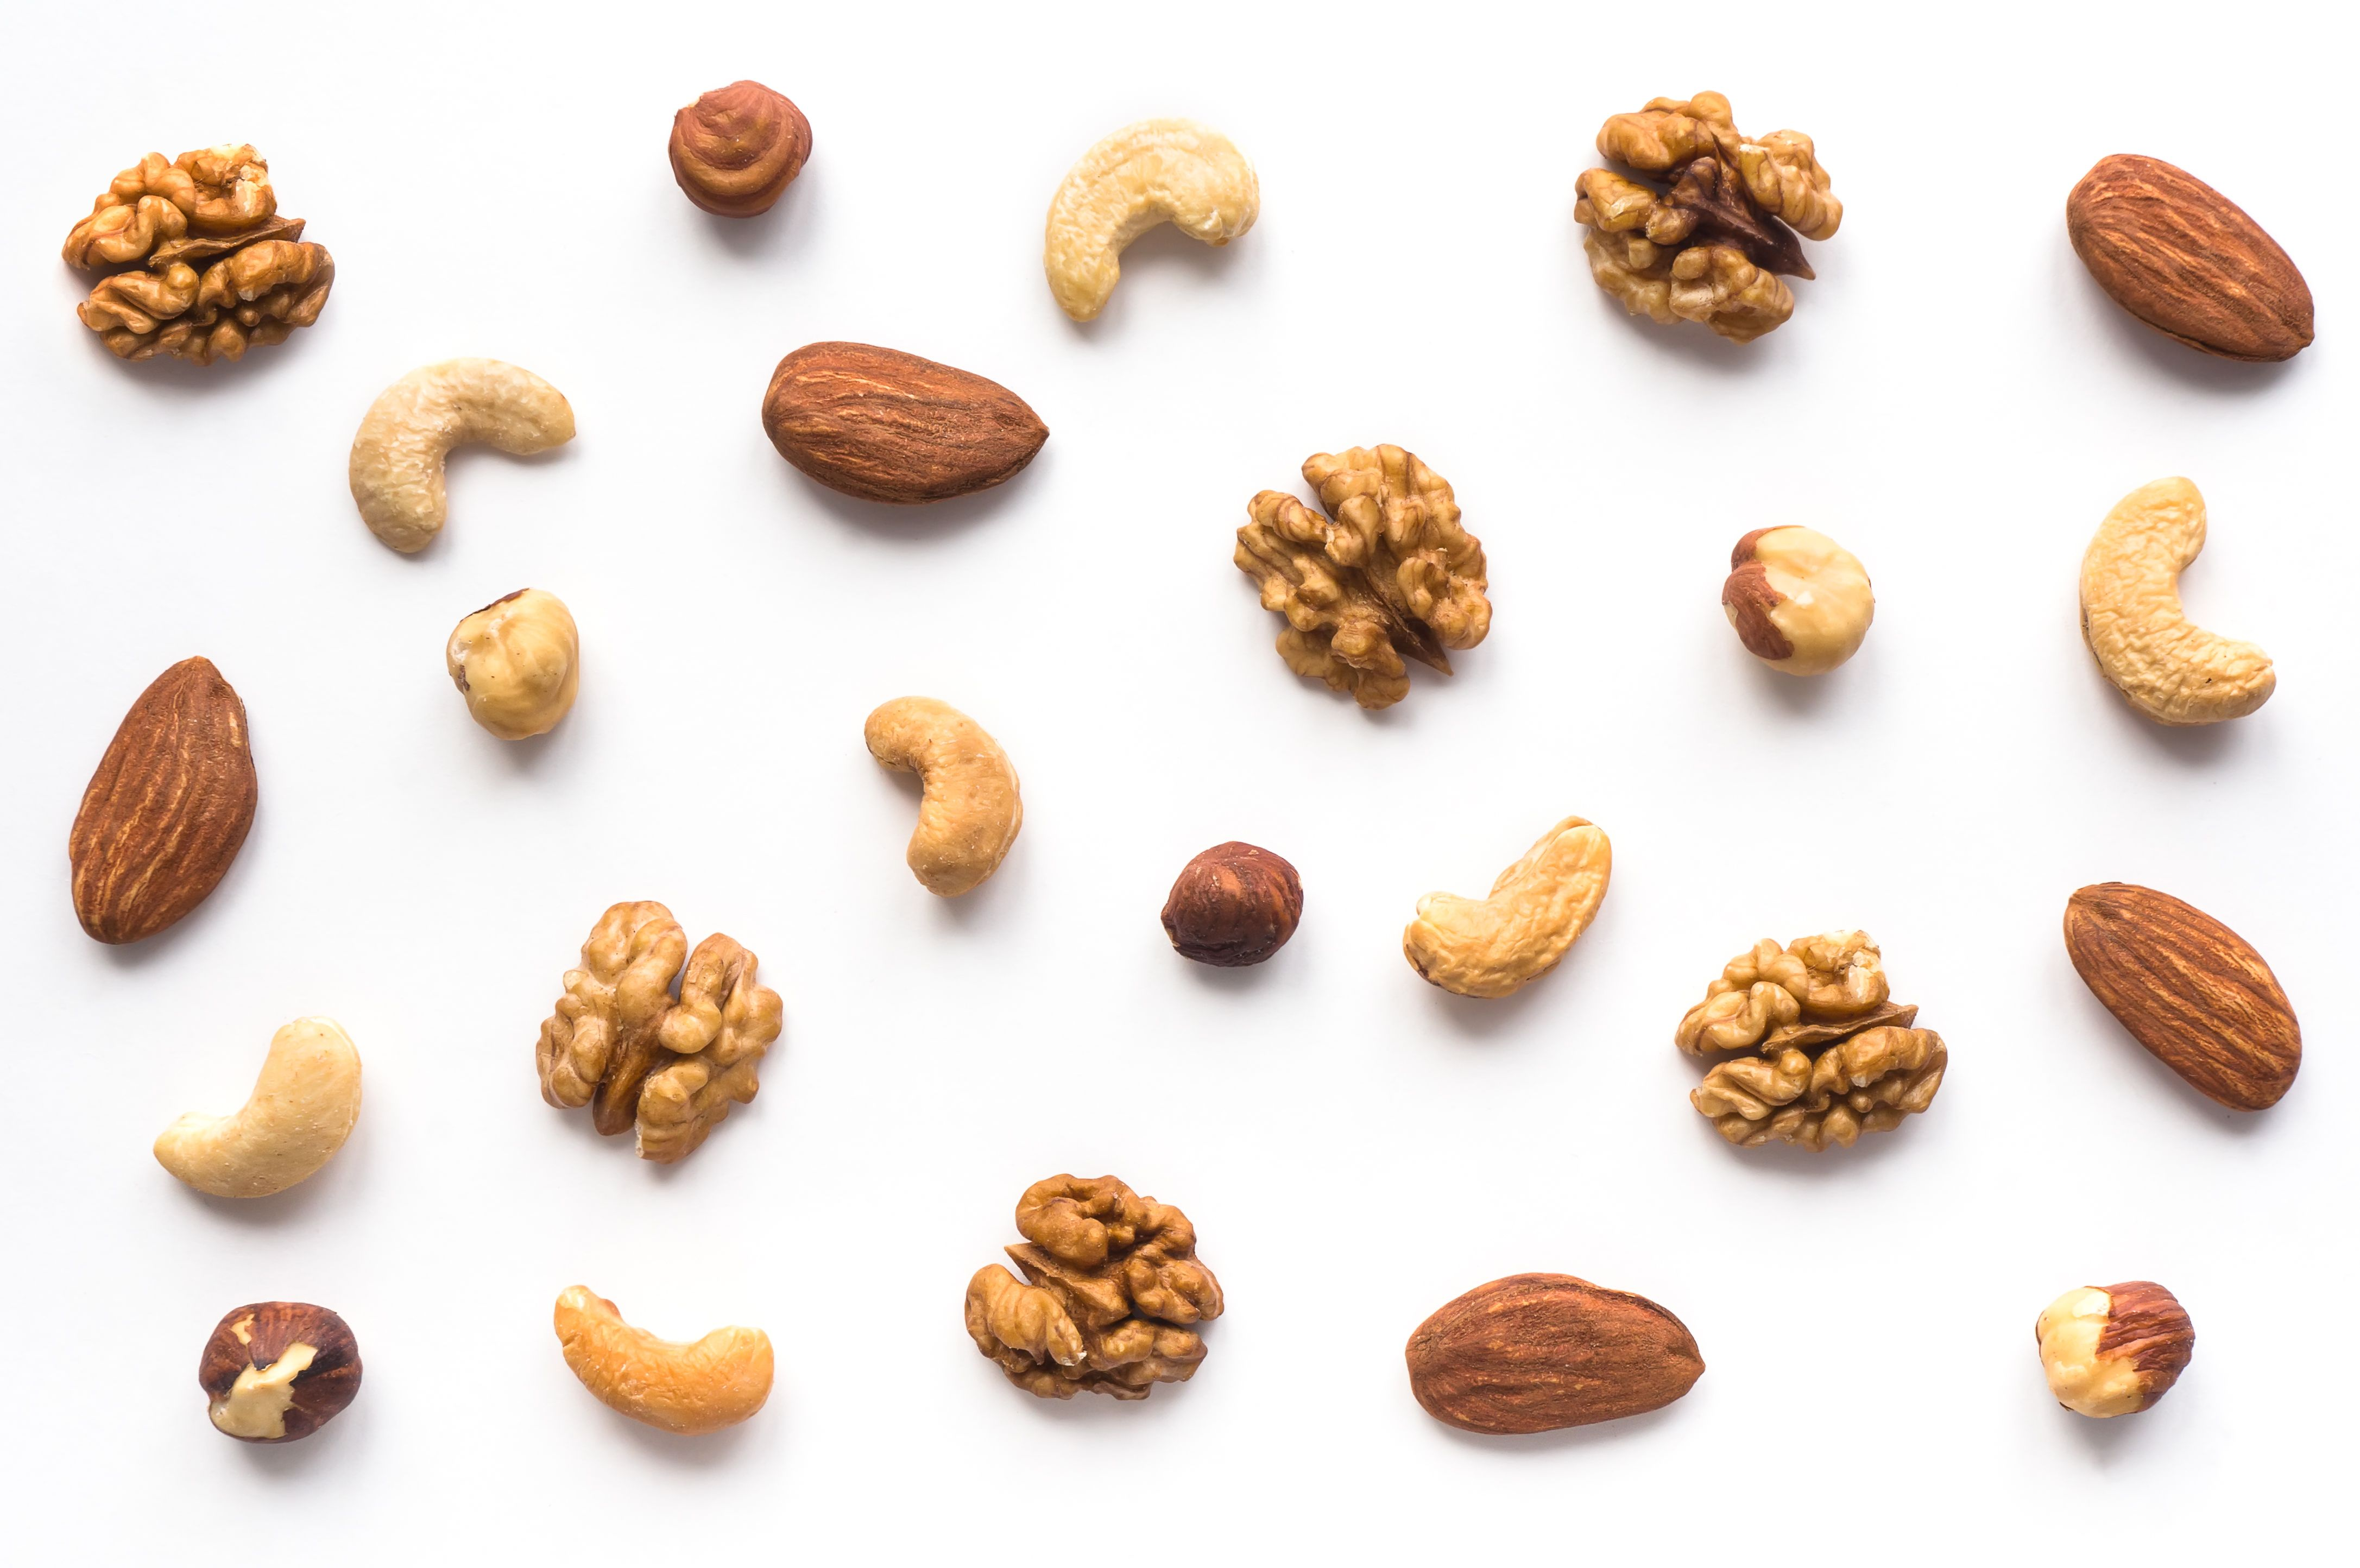 These Are The 5 Healthiest Nuts You Can Eat